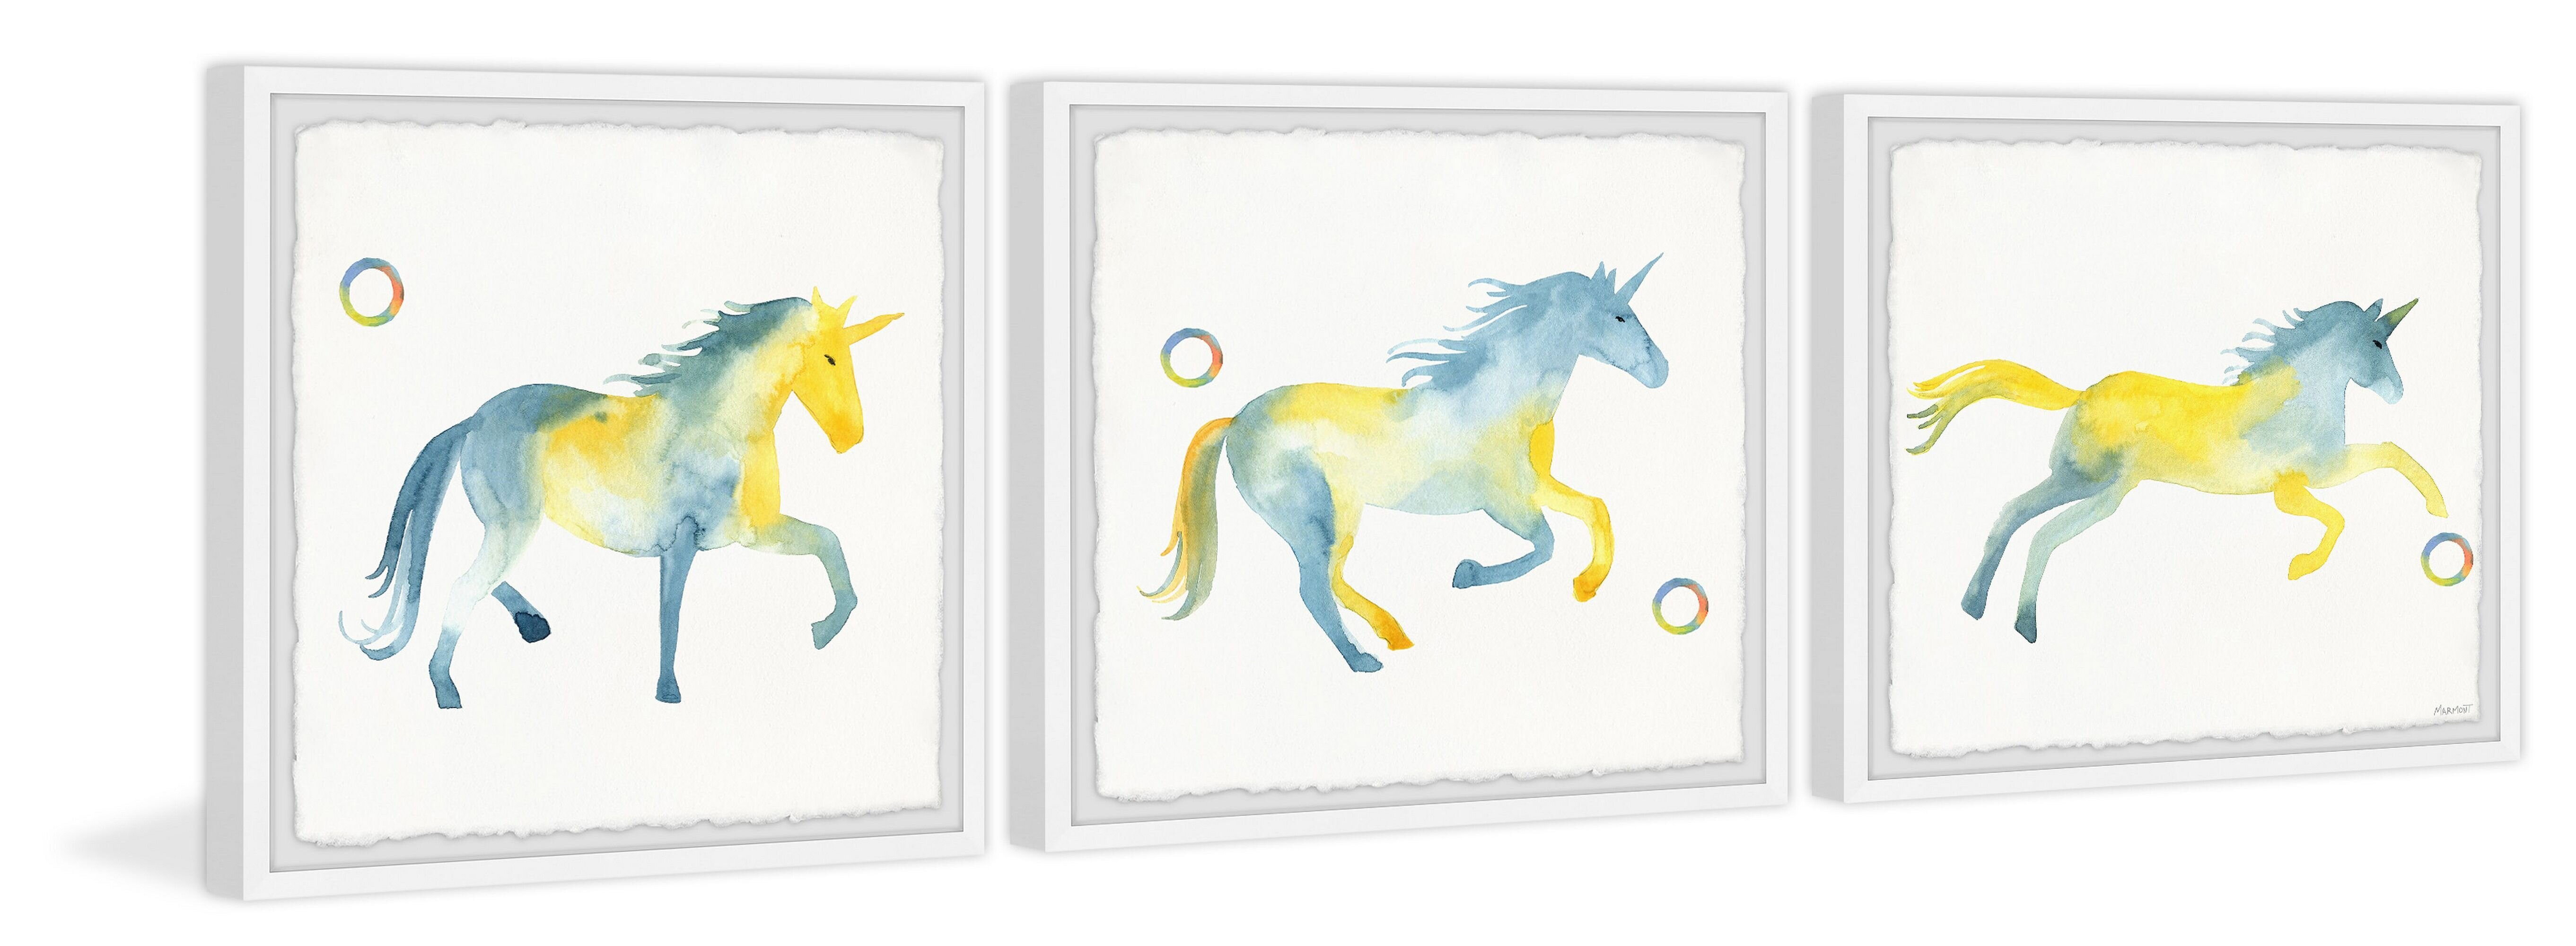 Isabelle Max Kids Wall Art You Ll Love In 2021 Wayfair